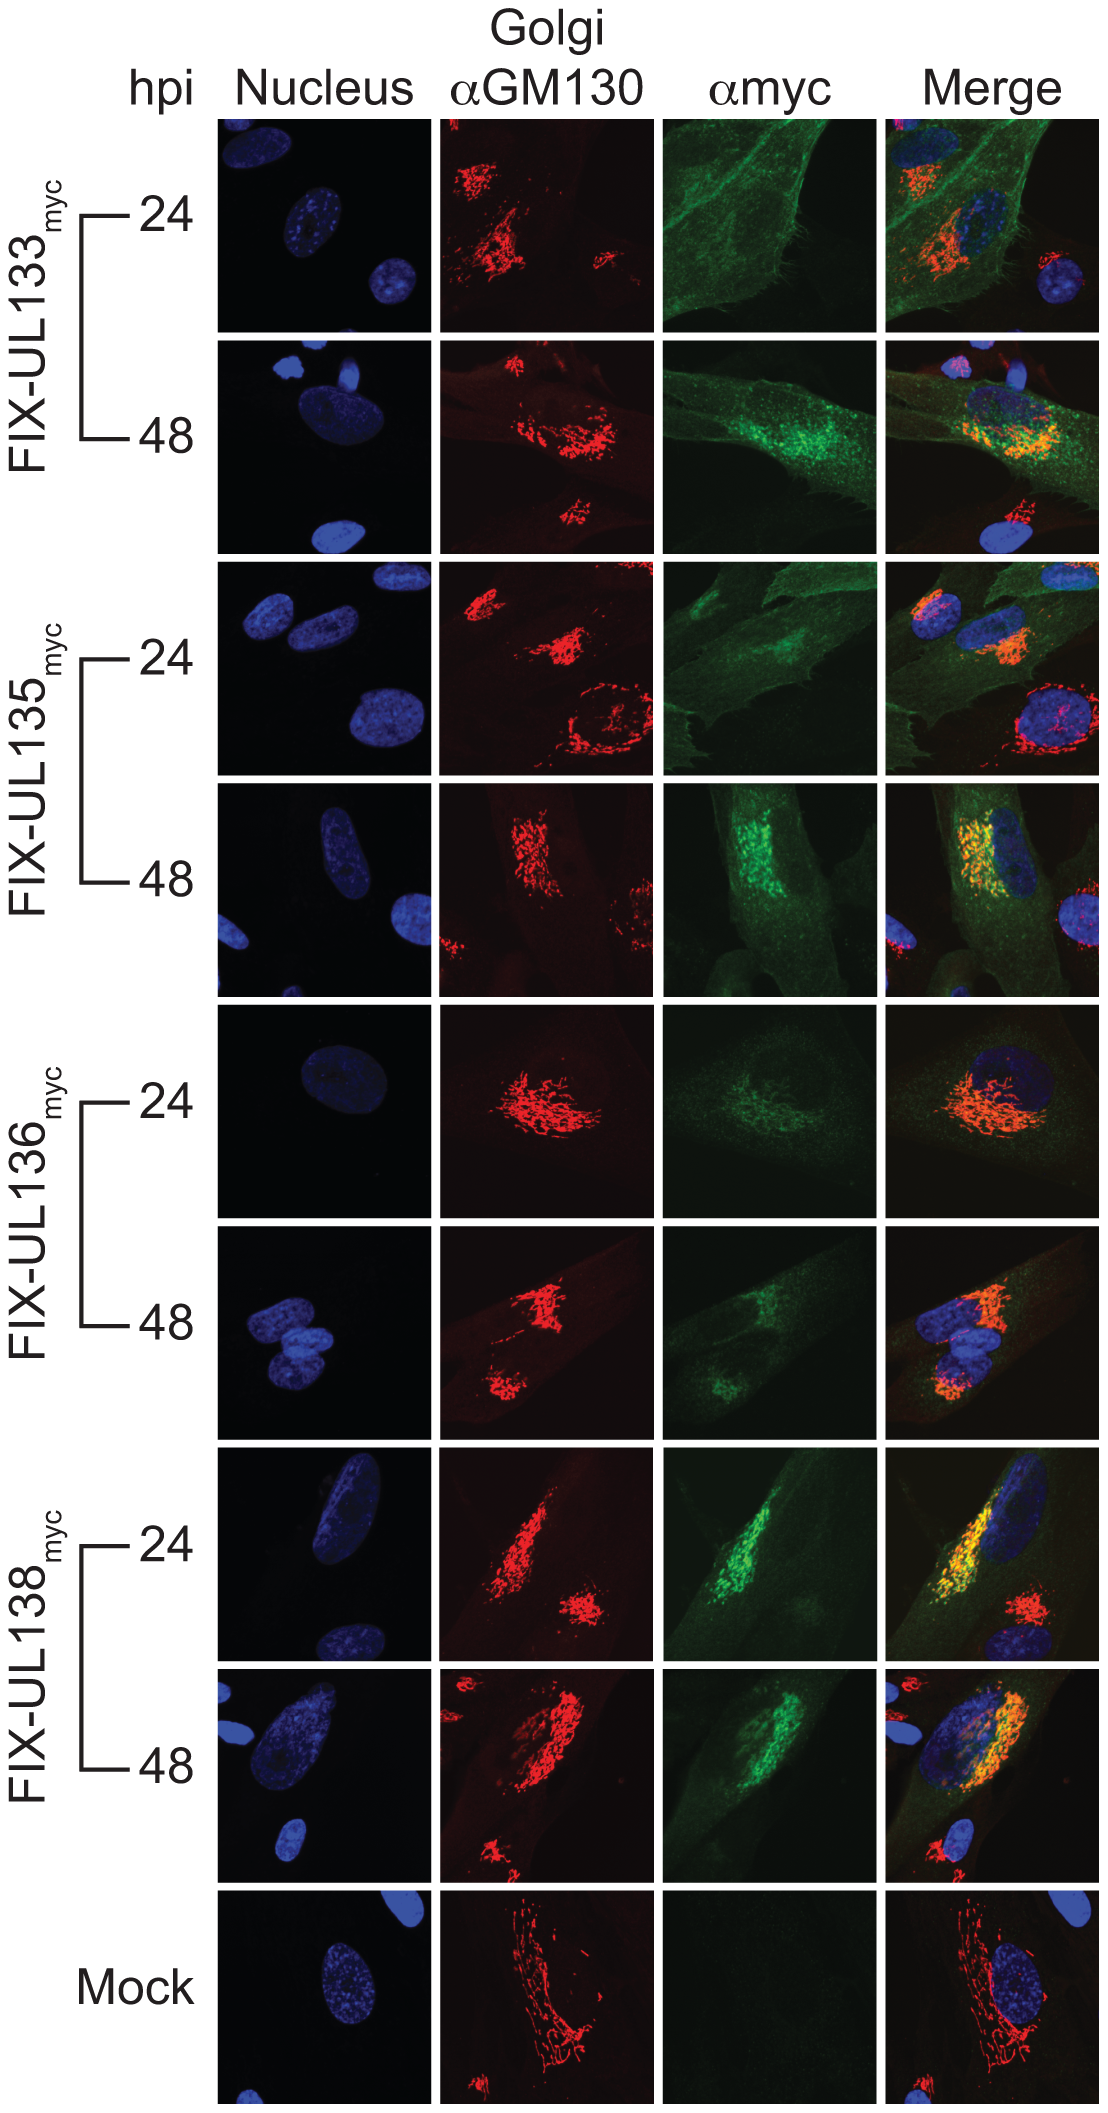 pUL133, pUL135, and pUL136 localize to the Golgi apparatus.